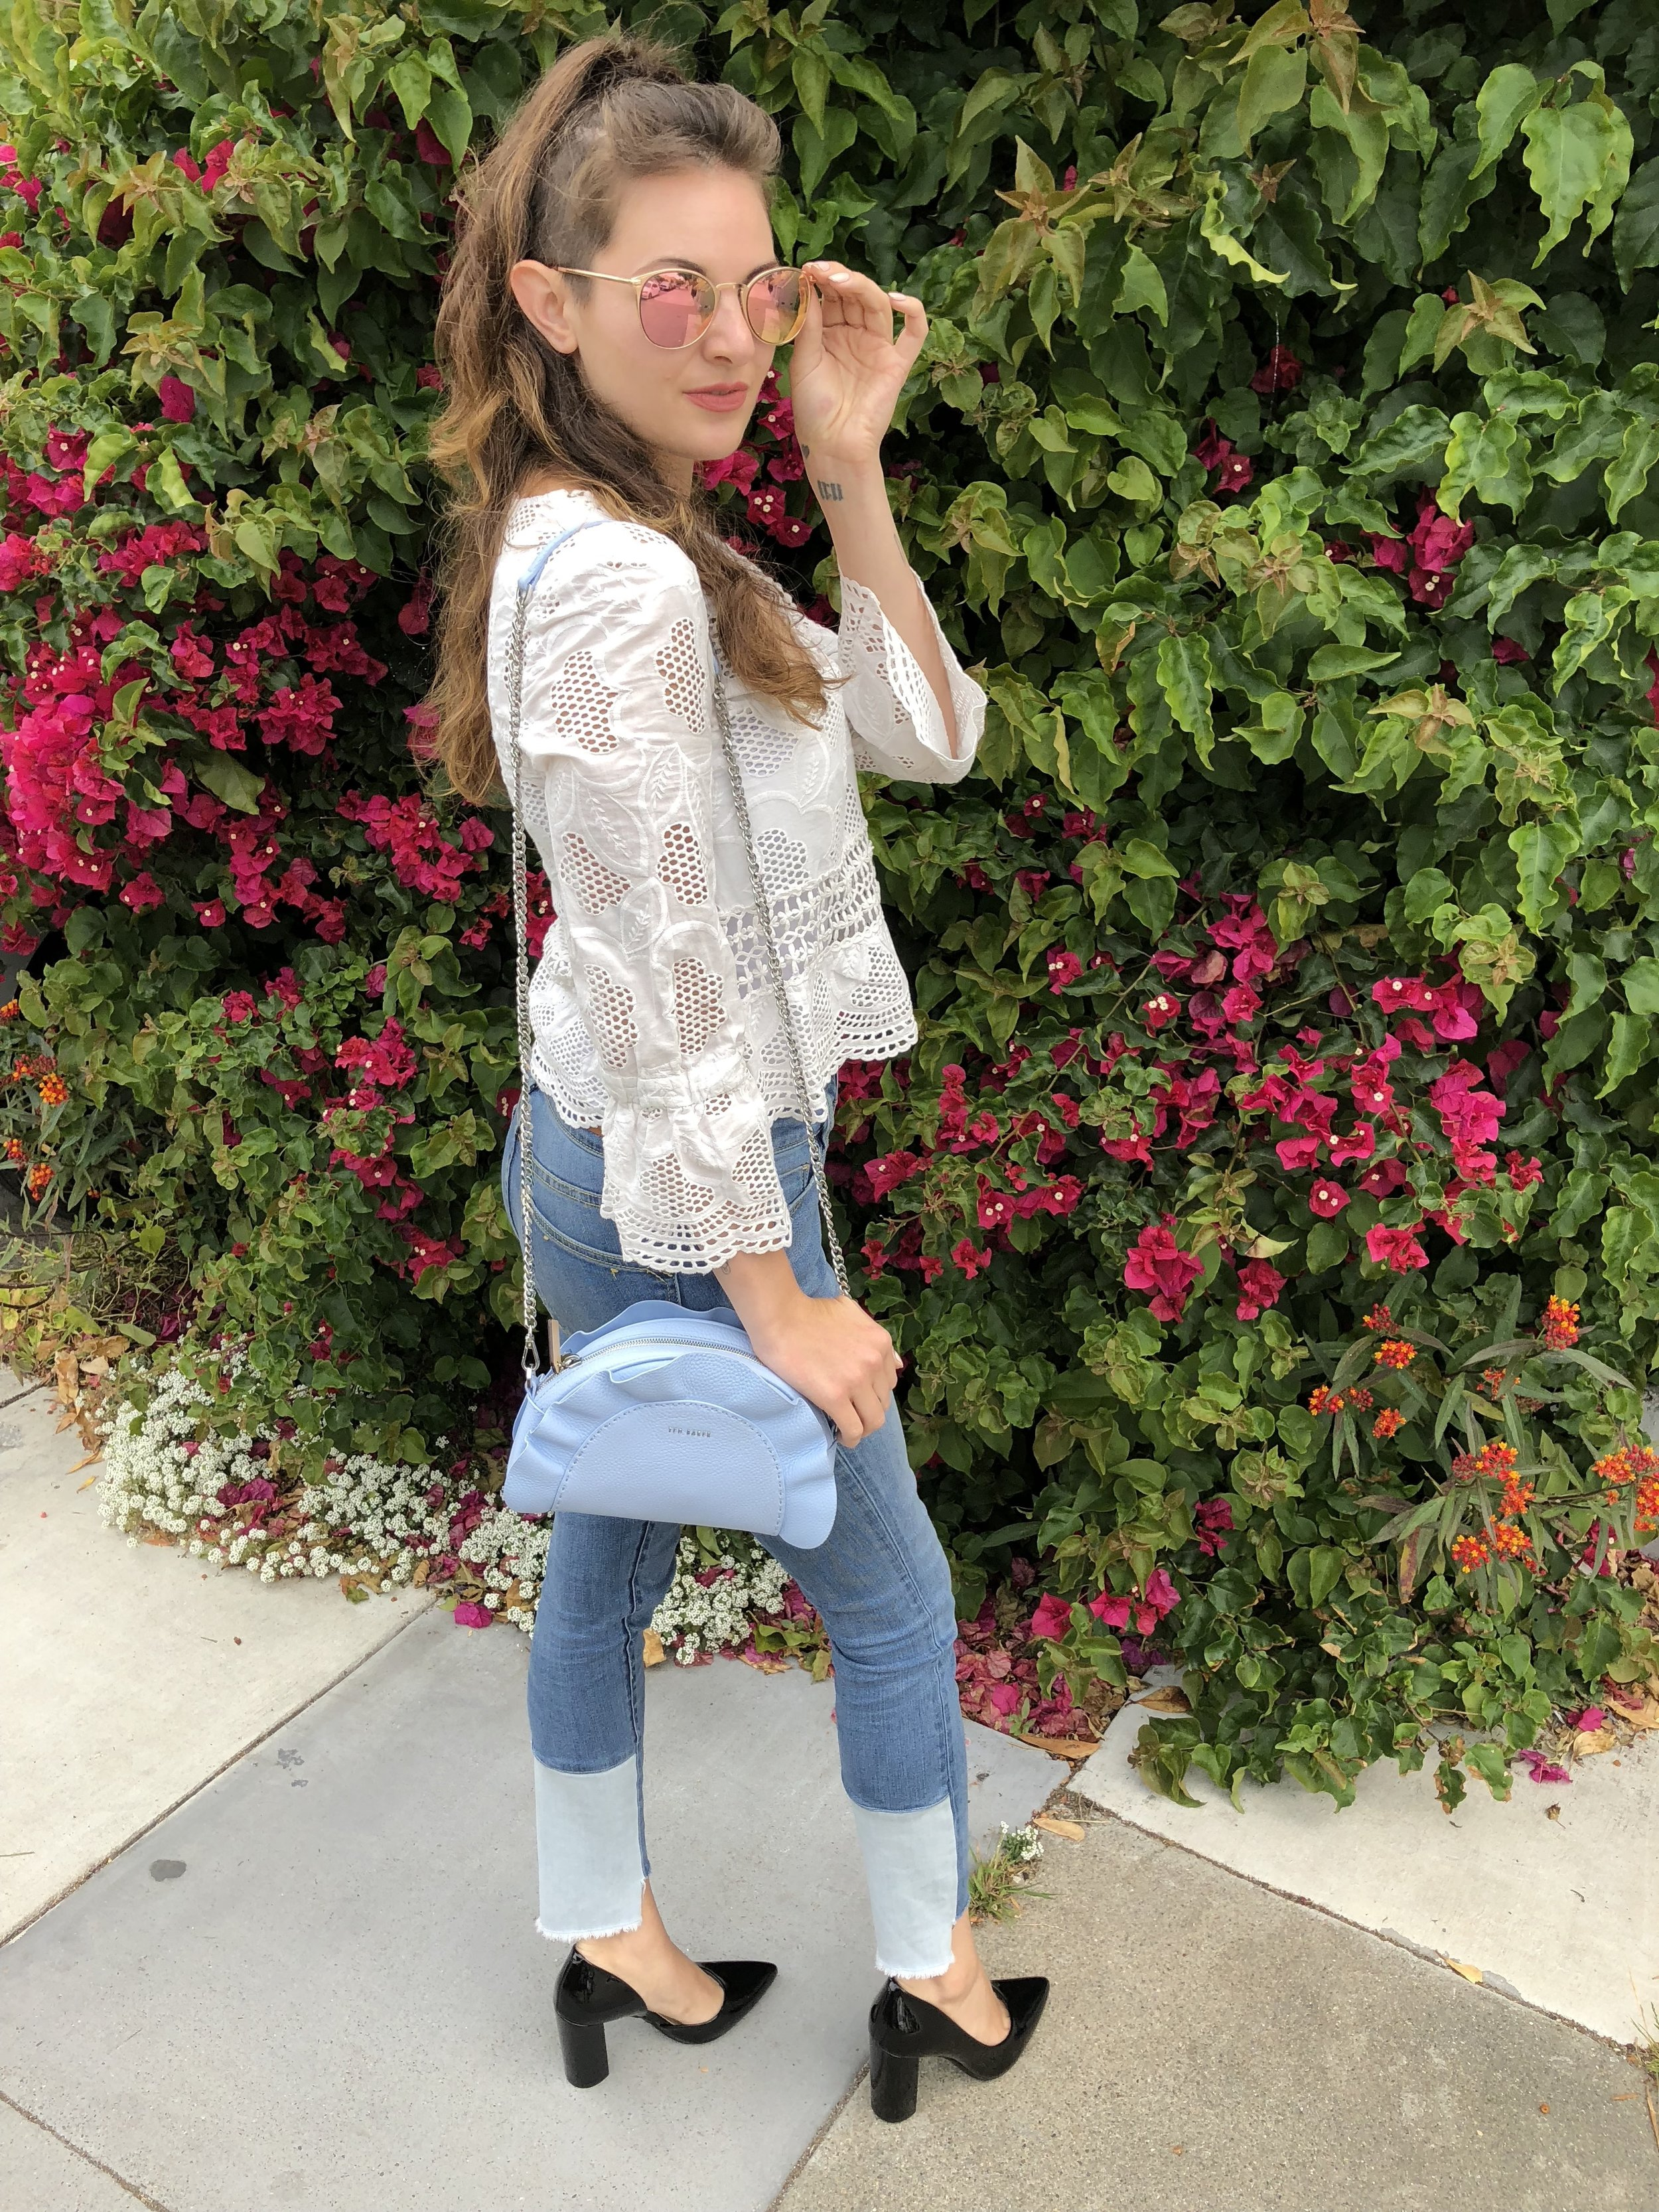 White Lace Top Outfit Idea